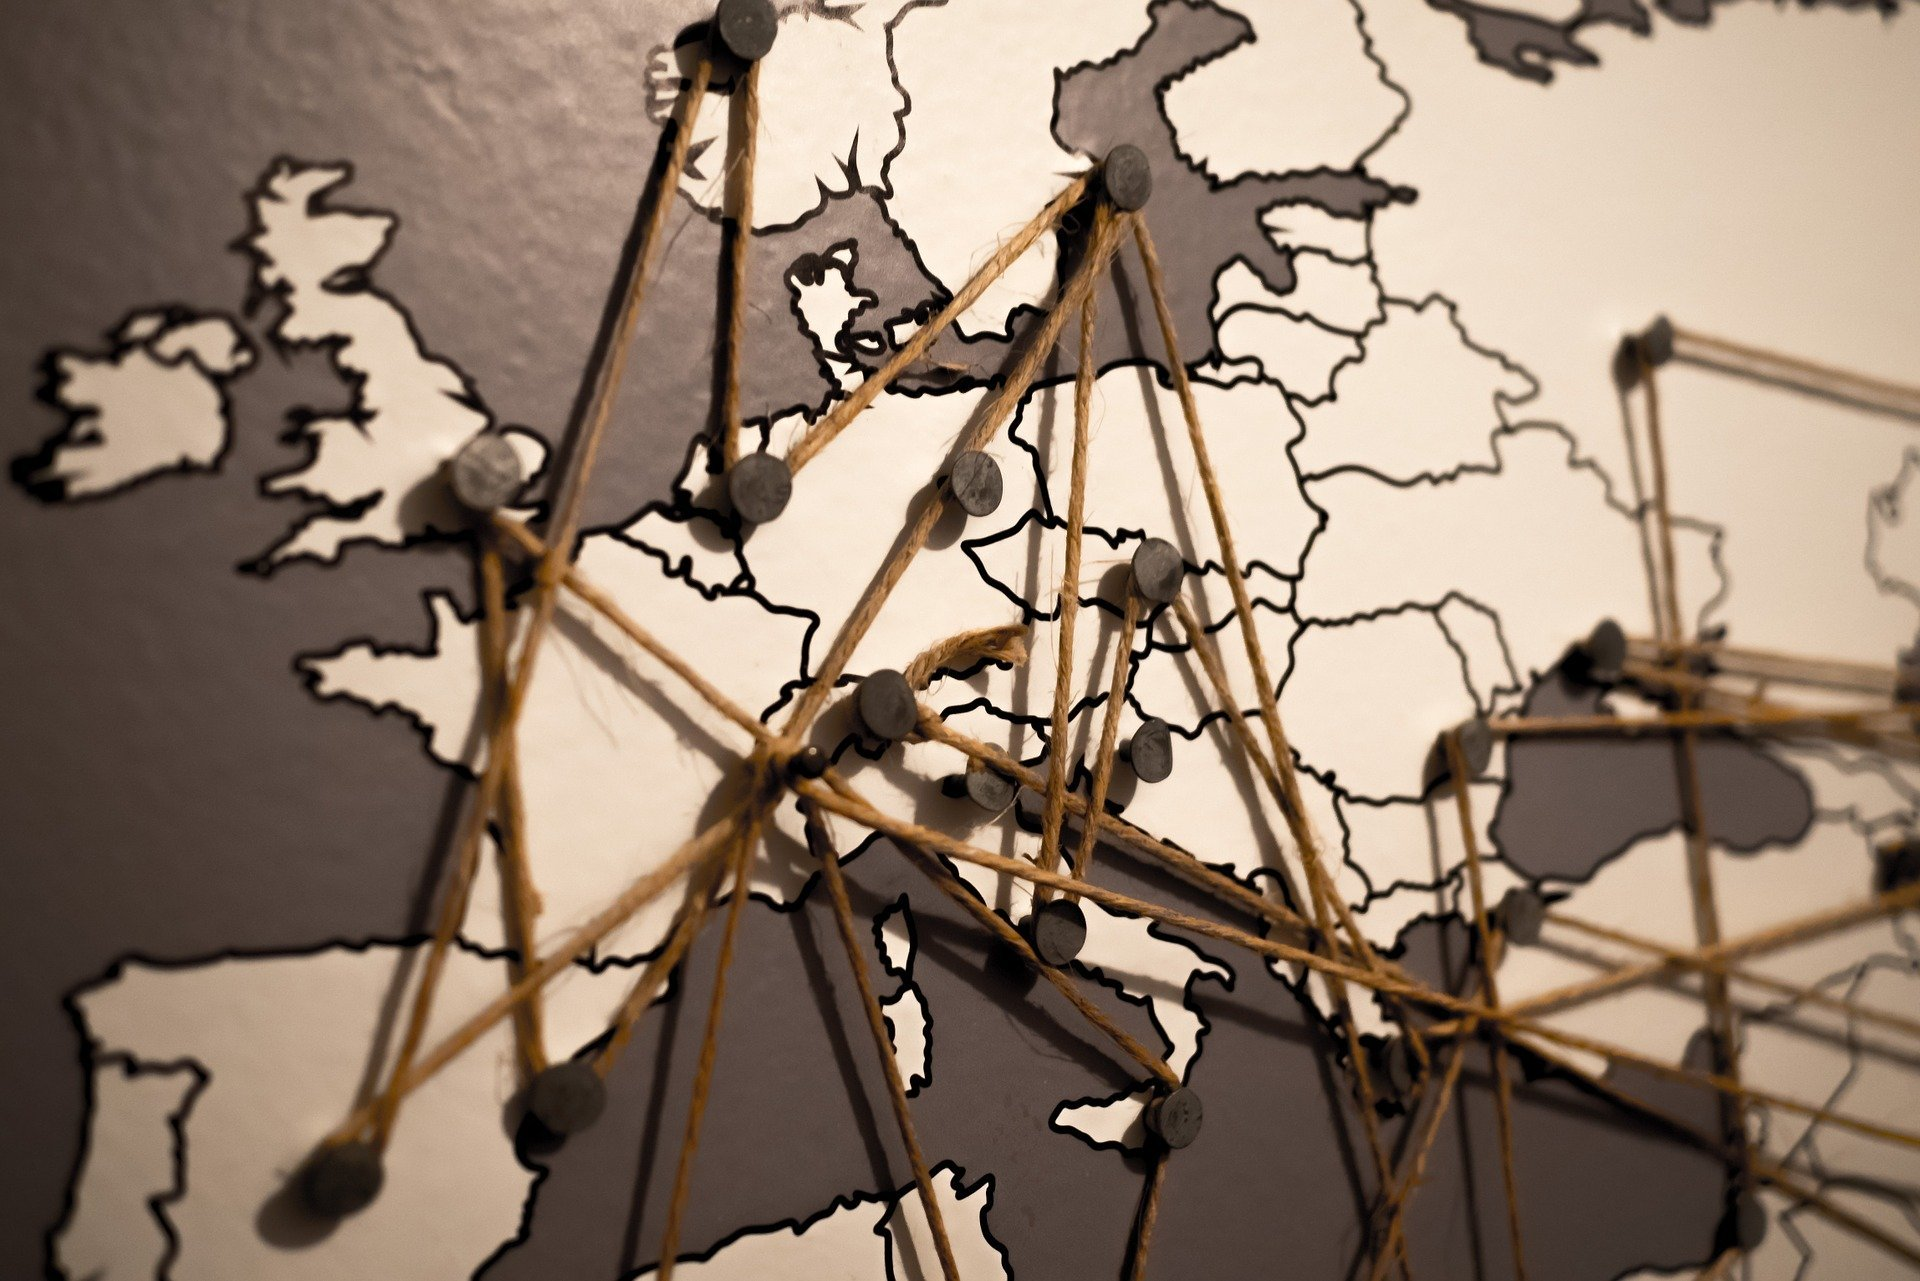 McParking parking lot network on stylized map of Europe